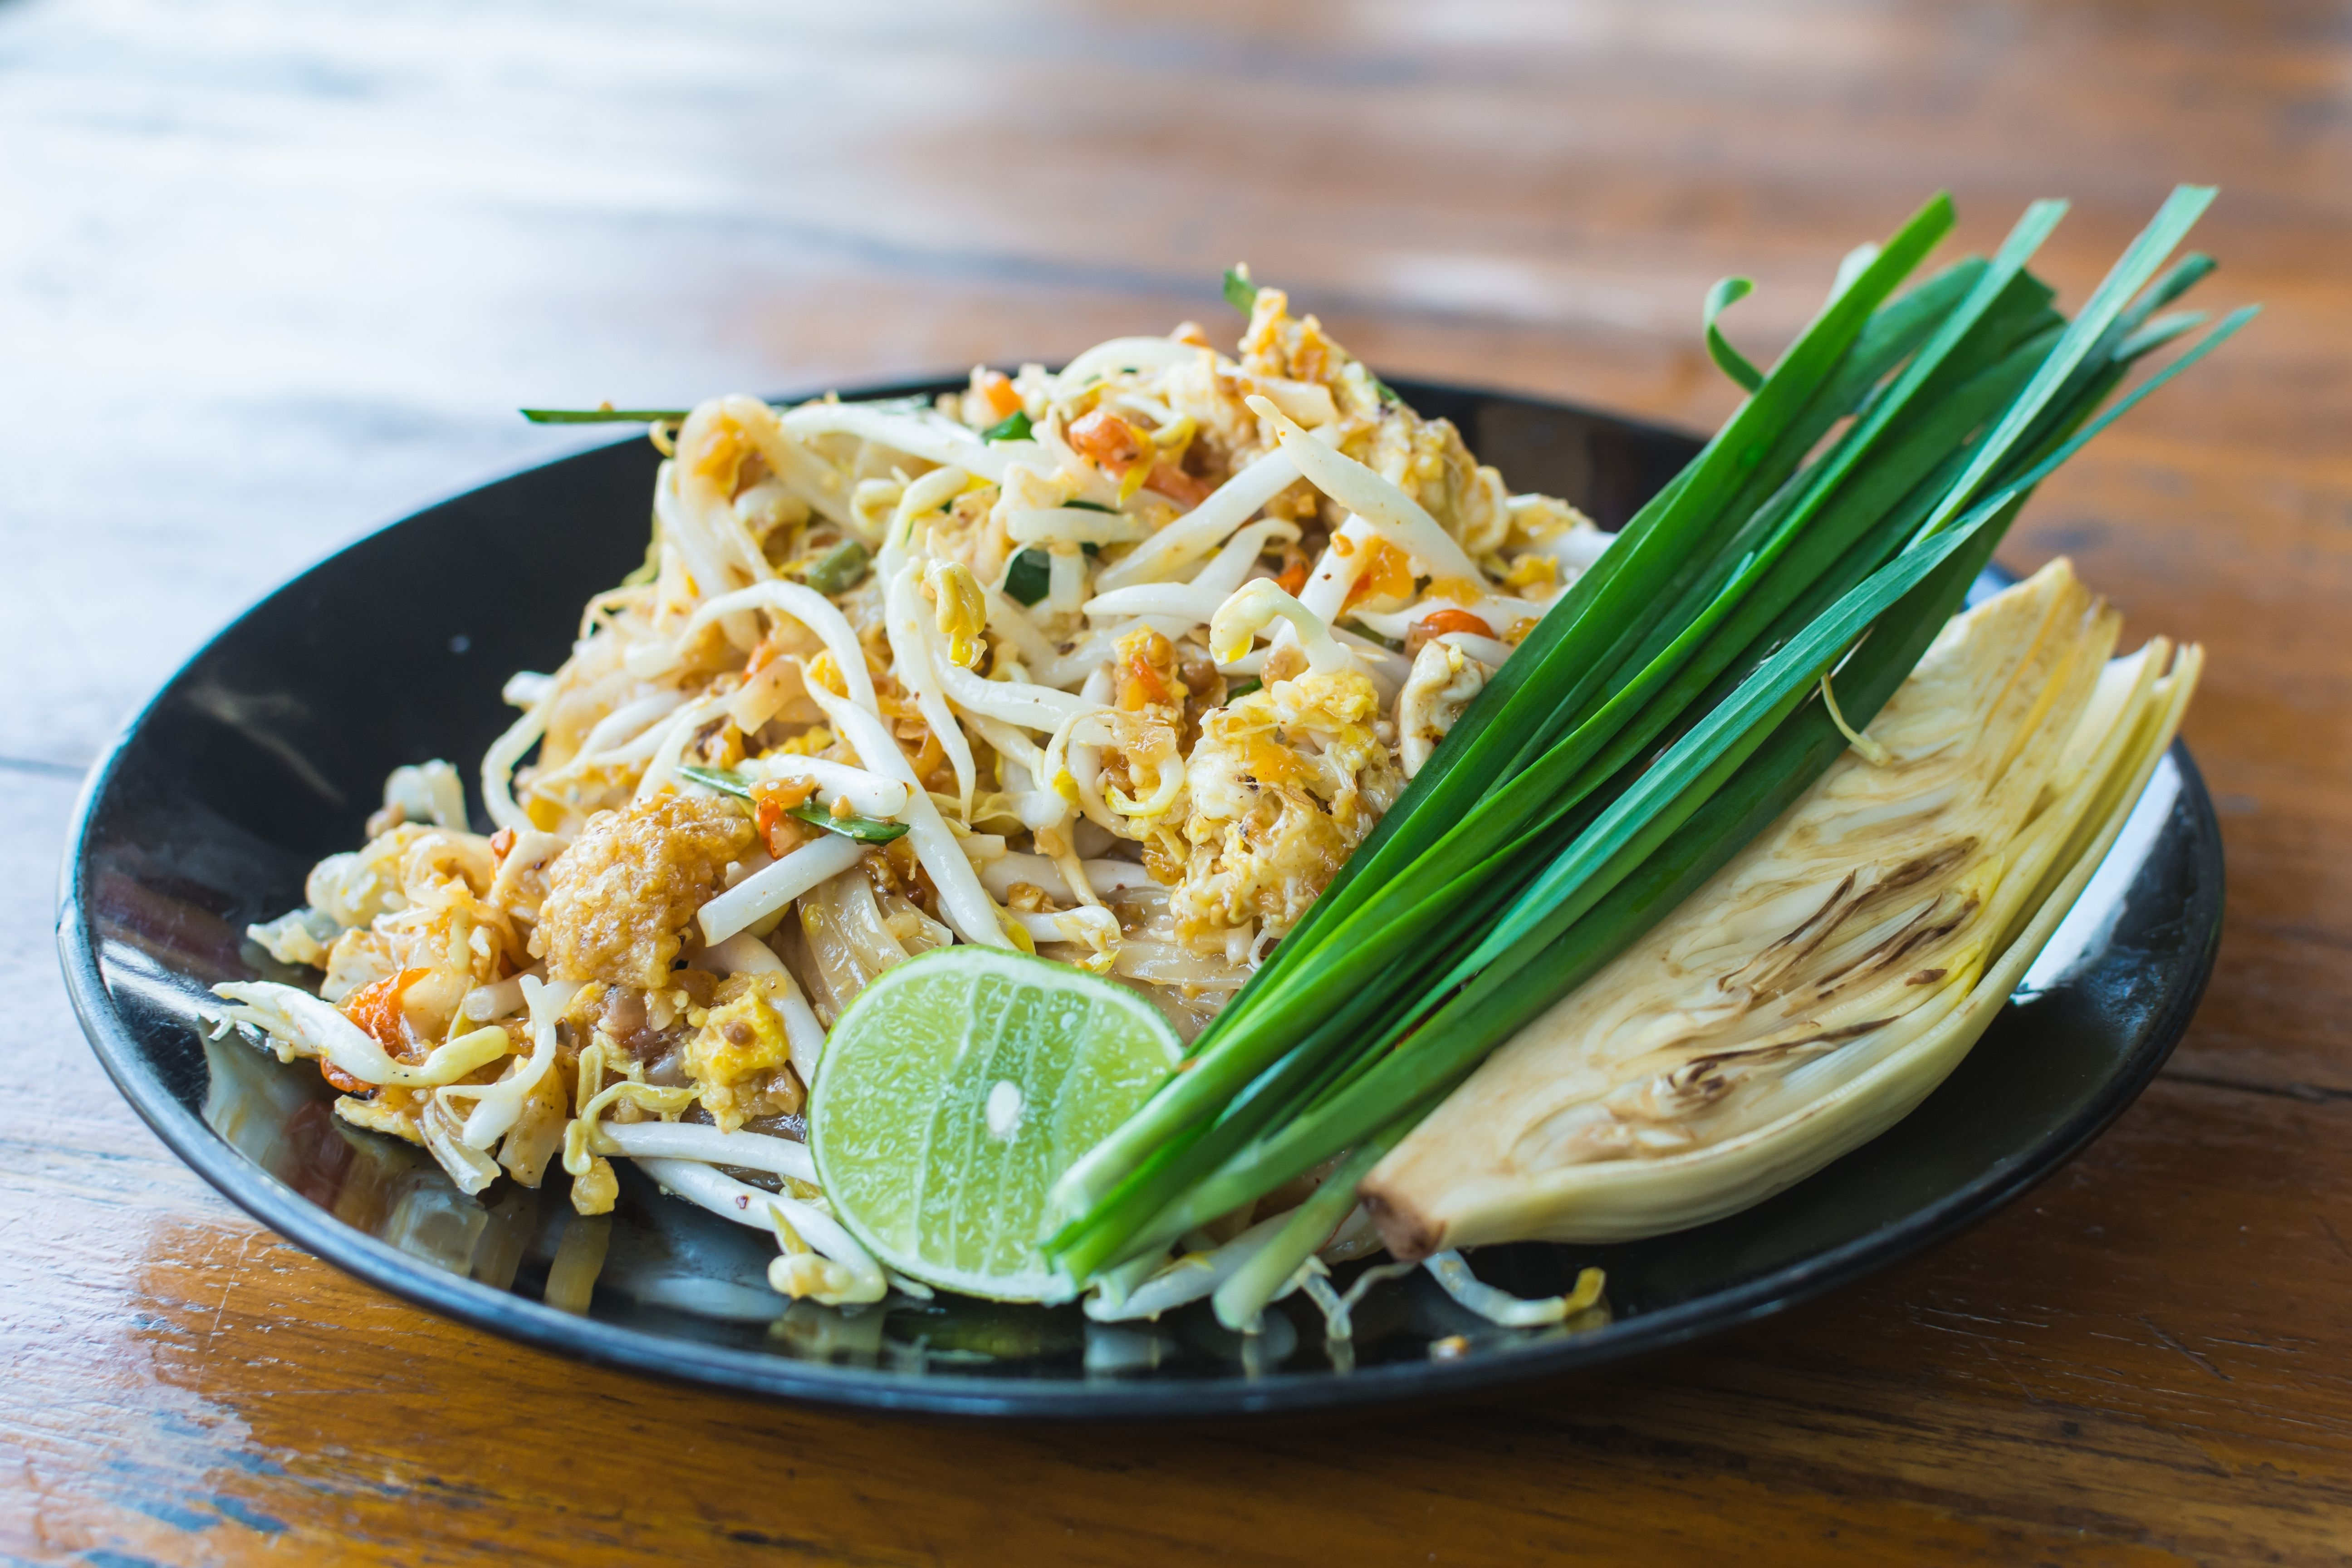 What Noodles Can Be Used For a Stir Fry